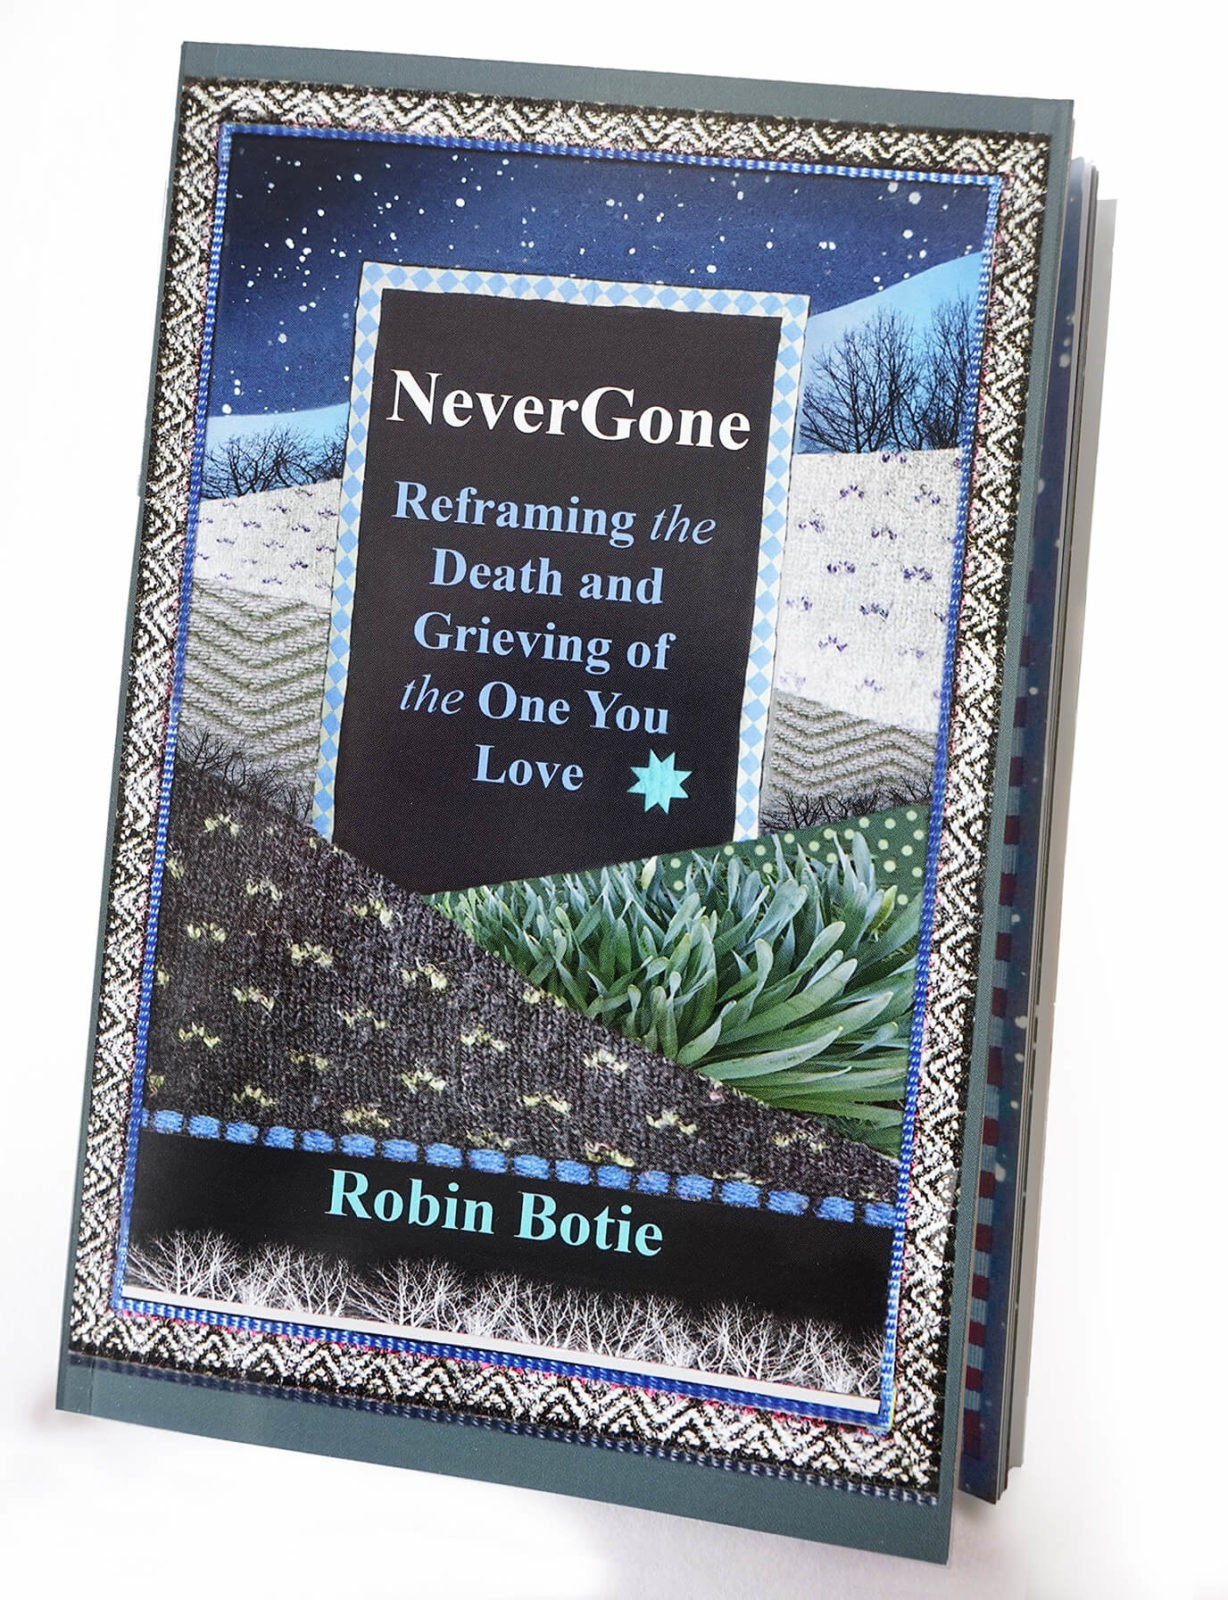 NeverGone: Reframing the Death and Grieving of the One You Love by Robin Botie is a book of illustrated short stories for those who are grieving the loss of a loved one.